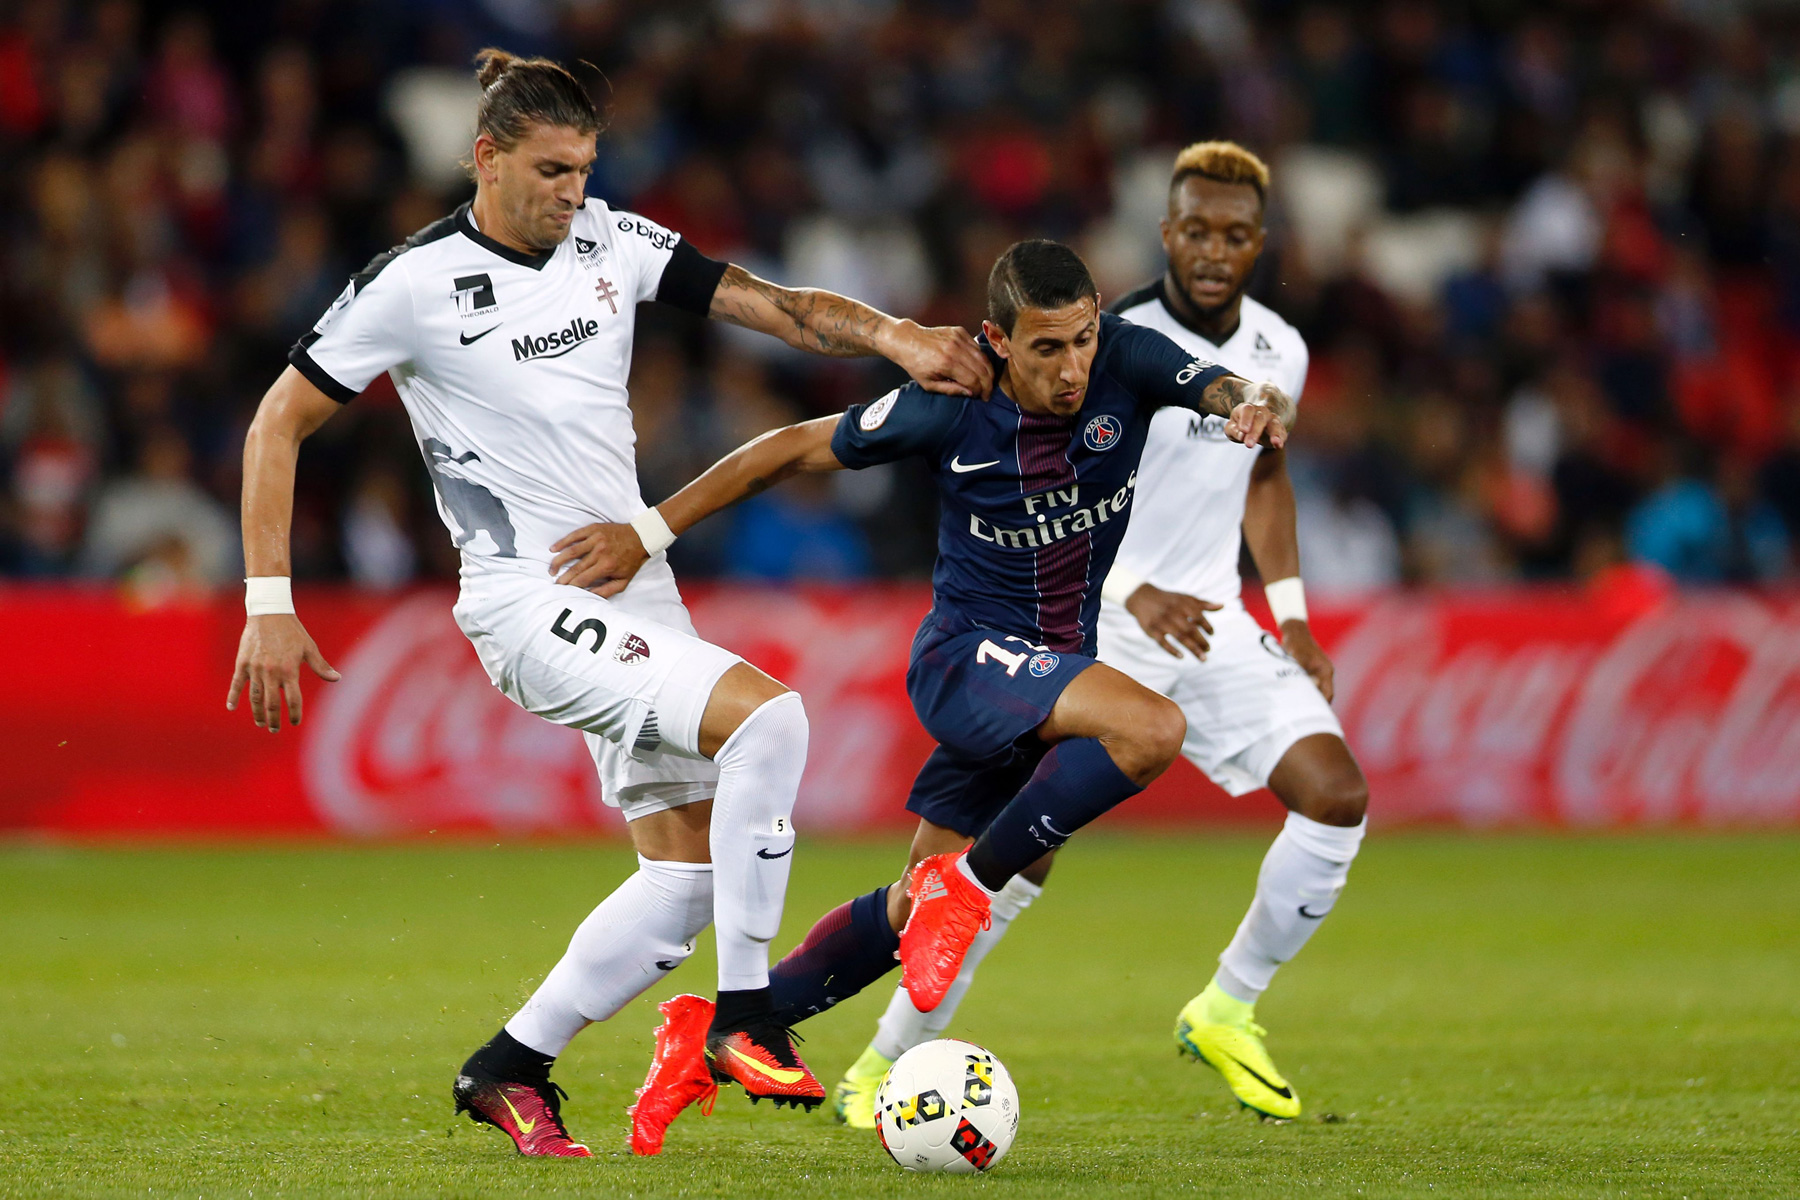 Match Preview: PSG Look to Sweep Aside Struggling Metz - PSG Talk